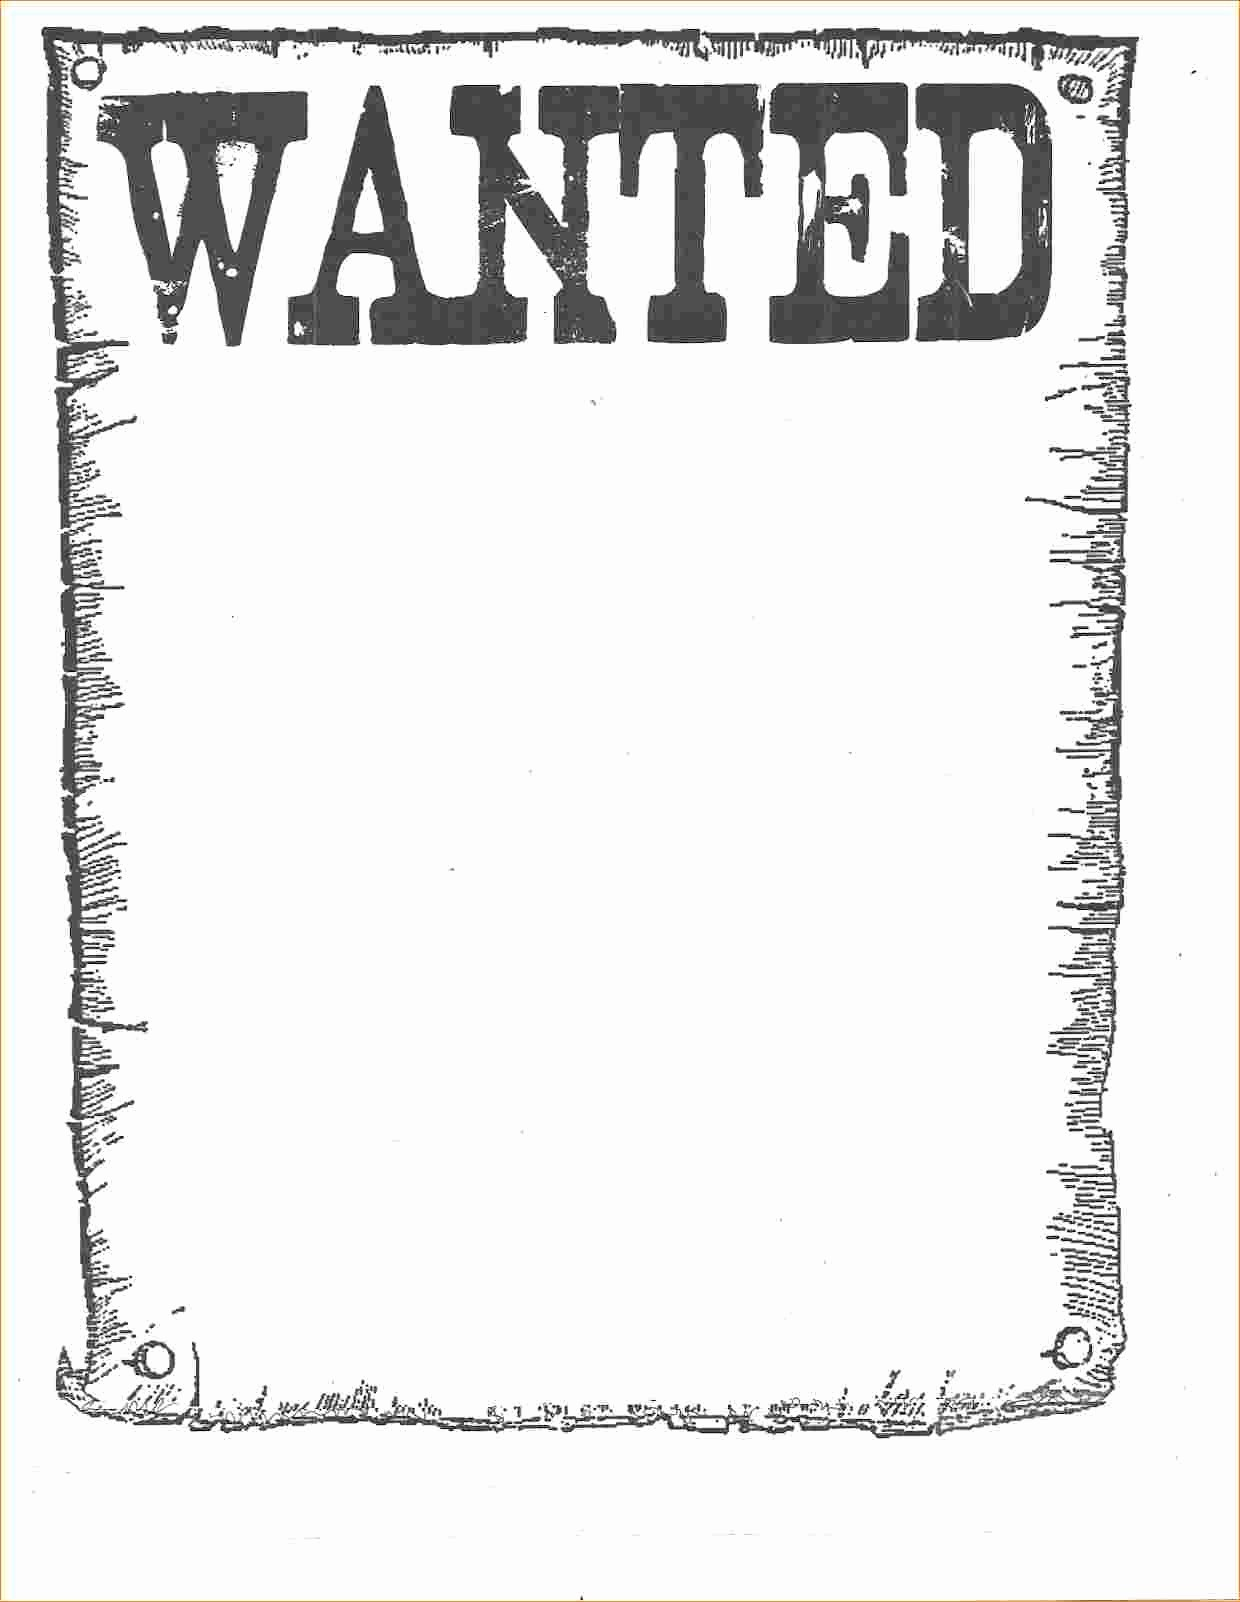 Poster Template Free Microsoft Word Best Of Wanted Poster Template for Word Portablegasgrillweber